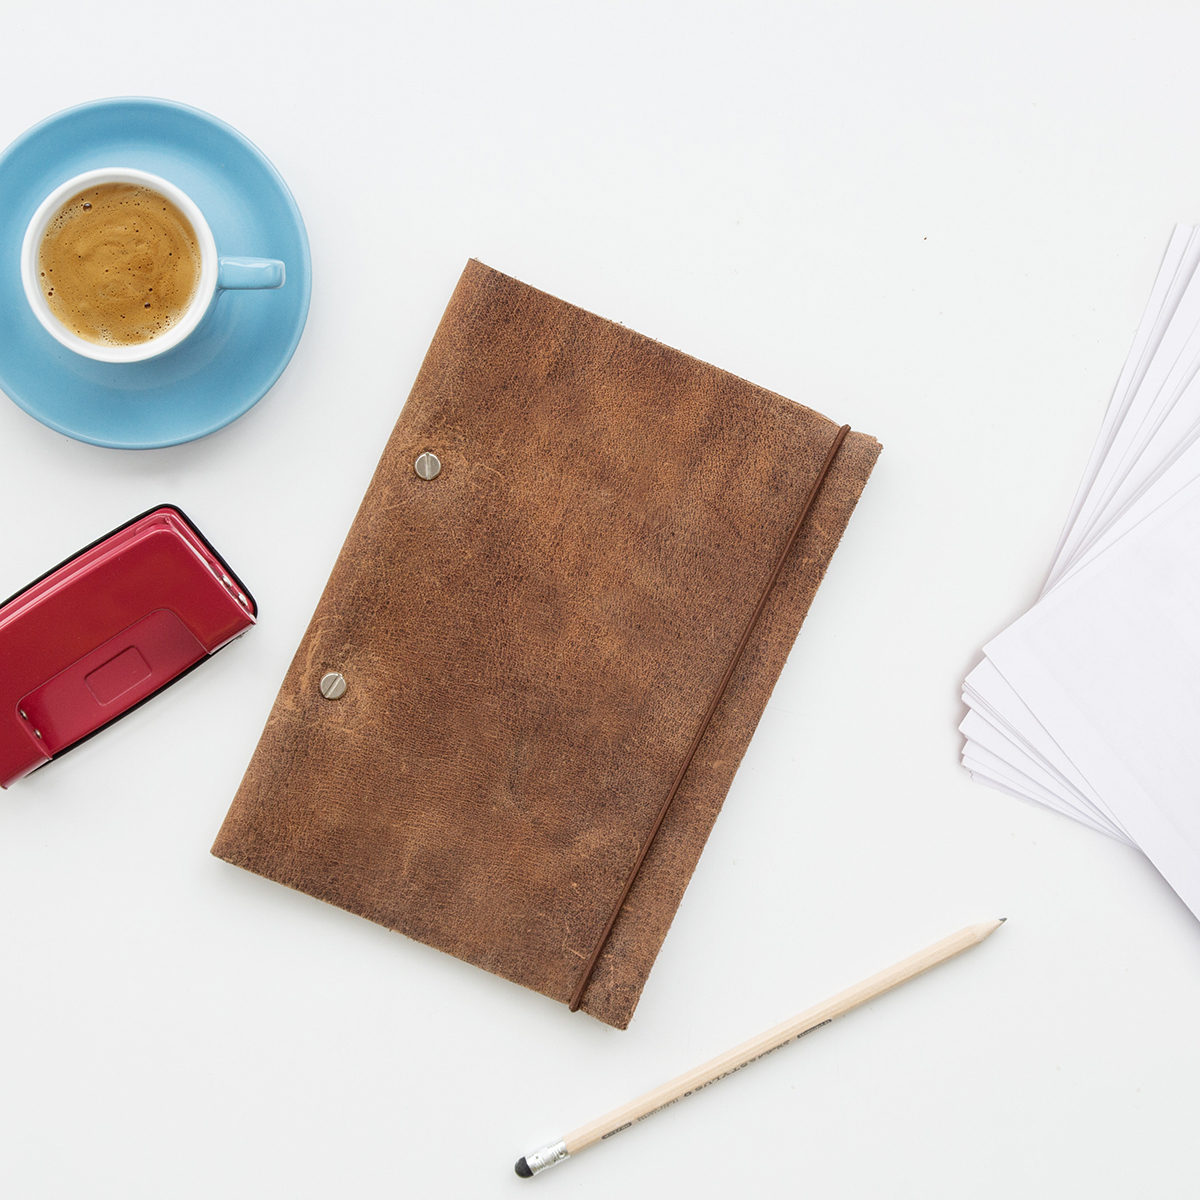 Suck UK Create your own leather notebook